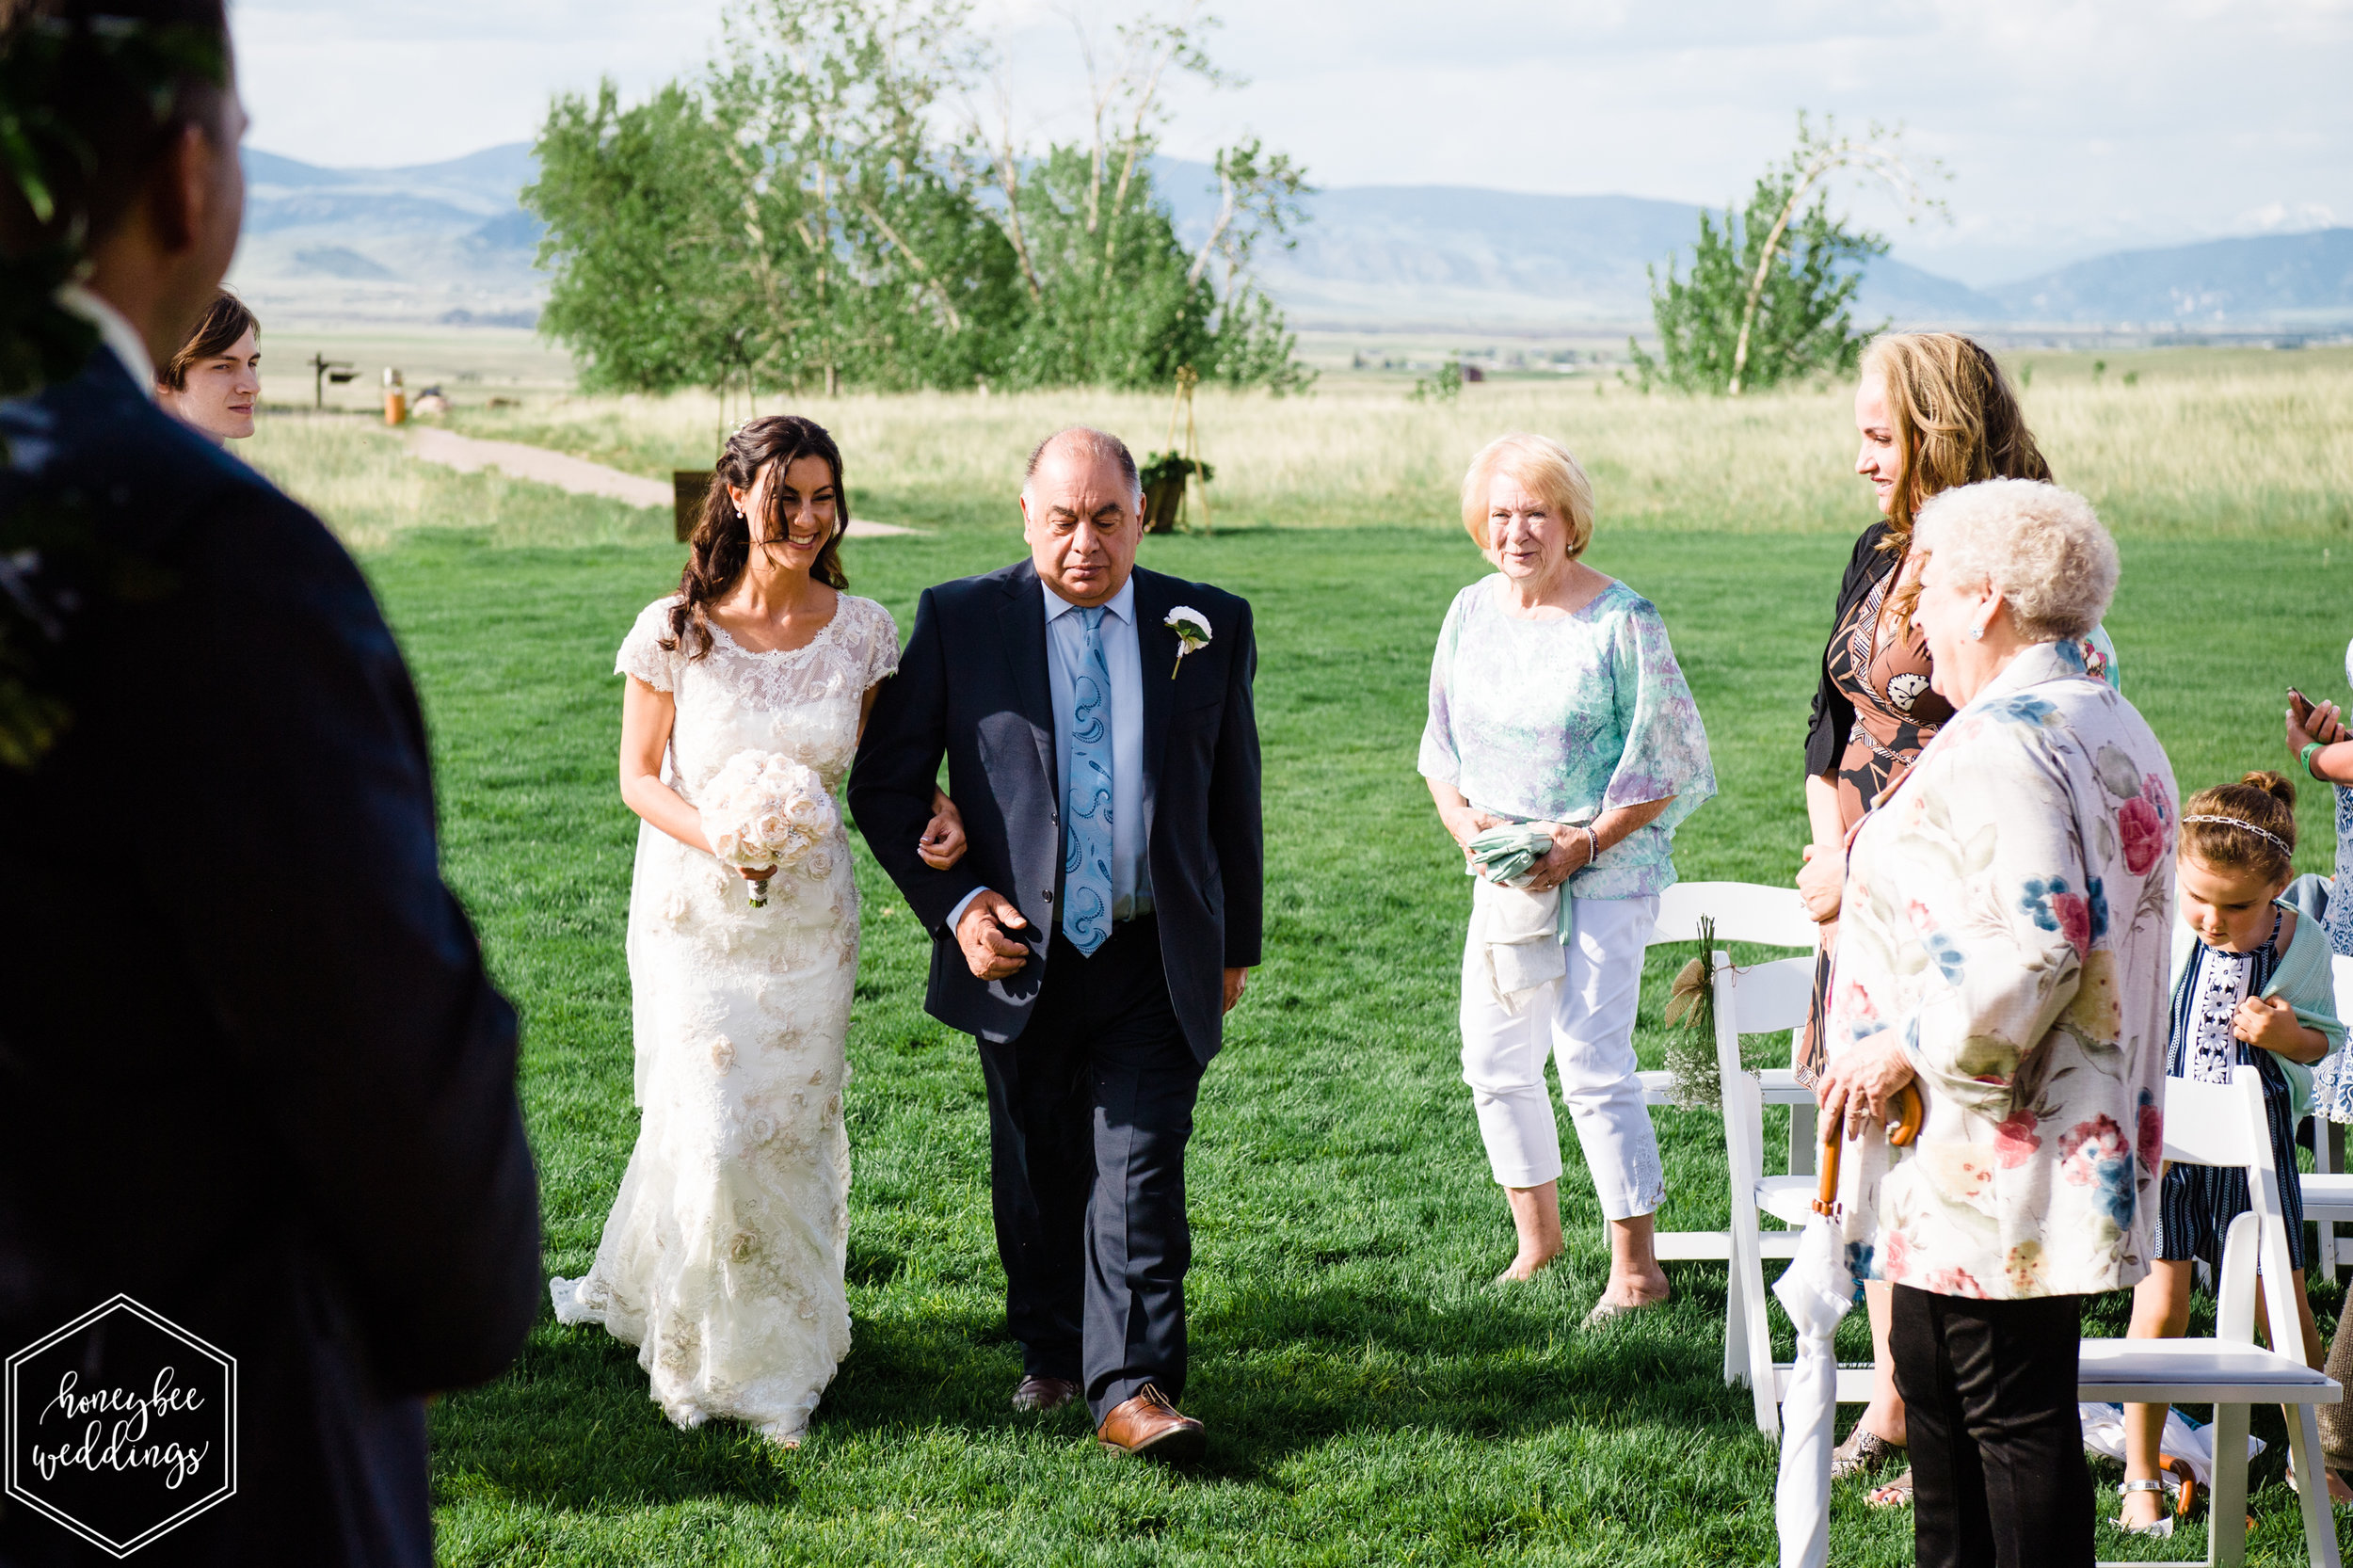 004Montana wedding photographer videographer_Chico hot springs wedding_Honeybee Weddings_Claudia & Bill_June 03, 2019-117.jpg